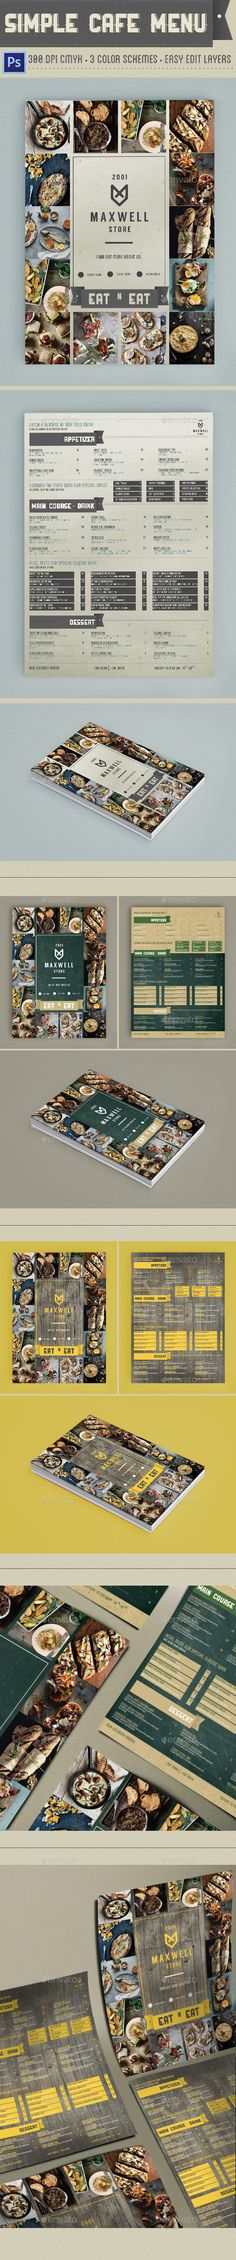 Simple Cafe Menu Template #design Download: http://graphicriver.net/item/simple-cafe-menu/12418396?ref=ksioks